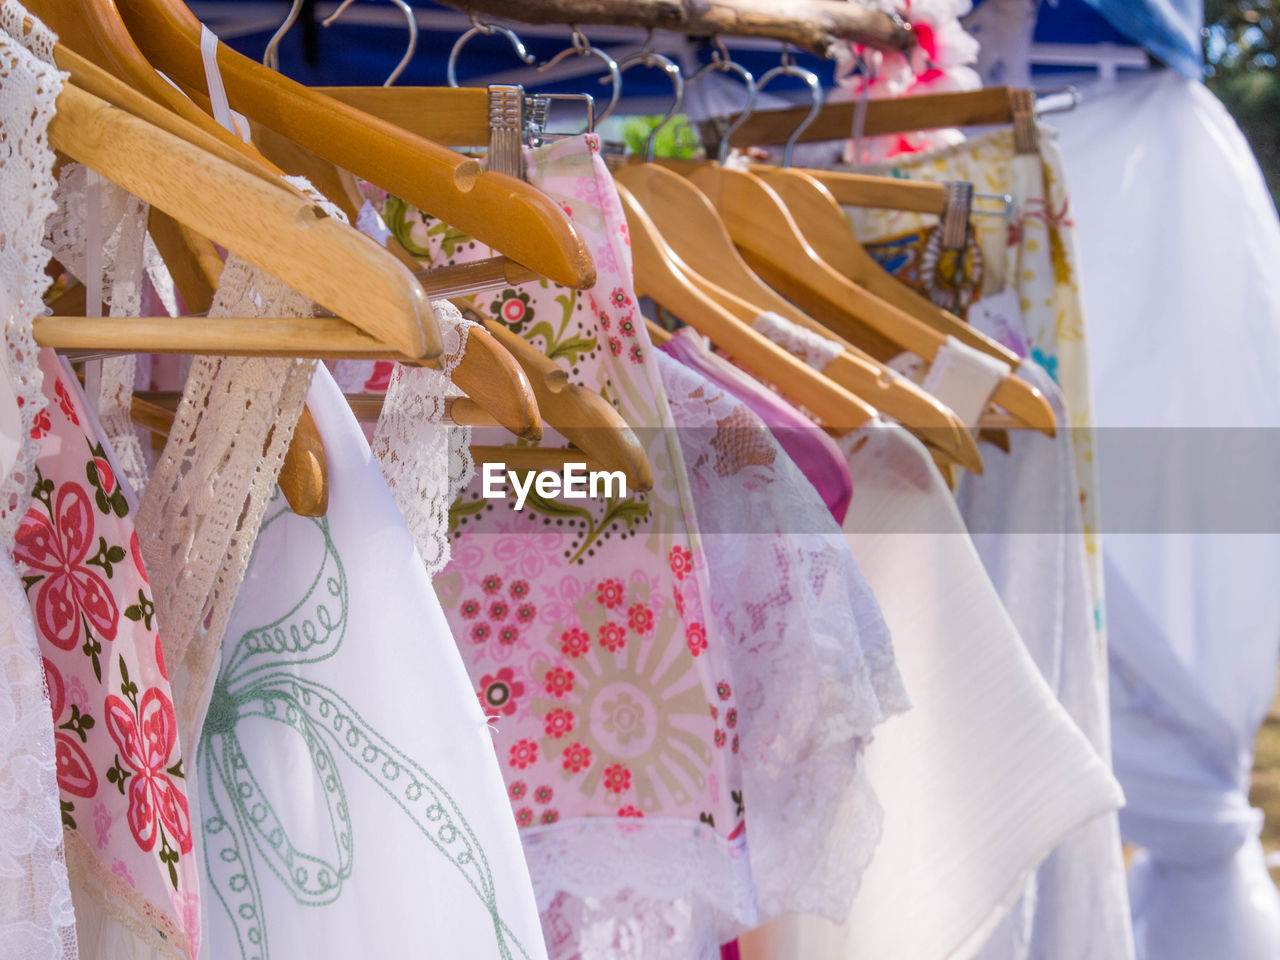 retail, choice, variation, clothing, store, coathanger, fashion, for sale, no people, large group of objects, indoors, hanging, multi colored, group of objects, consumerism, close-up, day